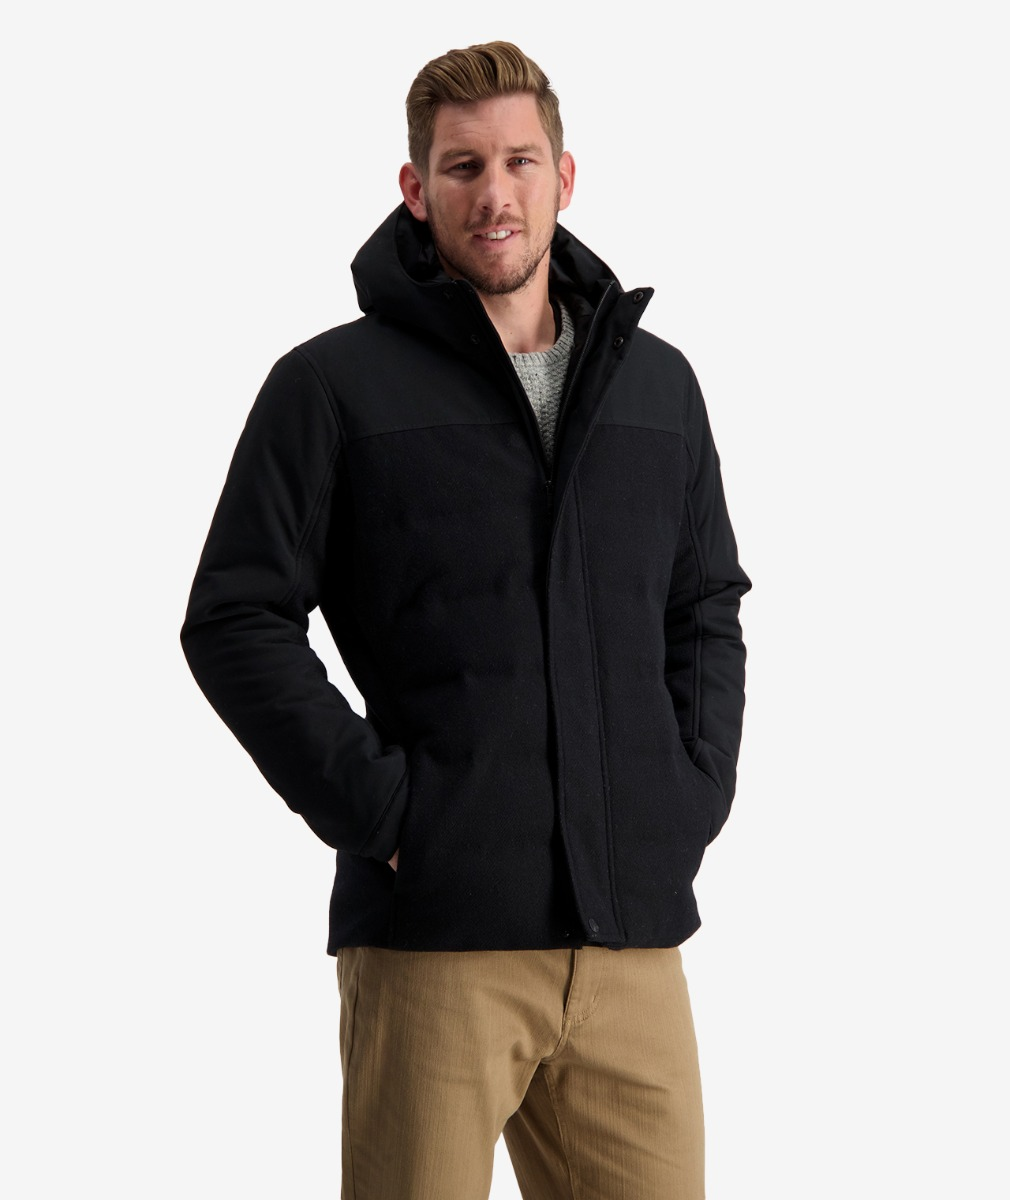 The Swanndri Men's Karamea Insulated Jacket in Black is guaranteed to keep you warm, with Primaloft Thermaplume through the body.